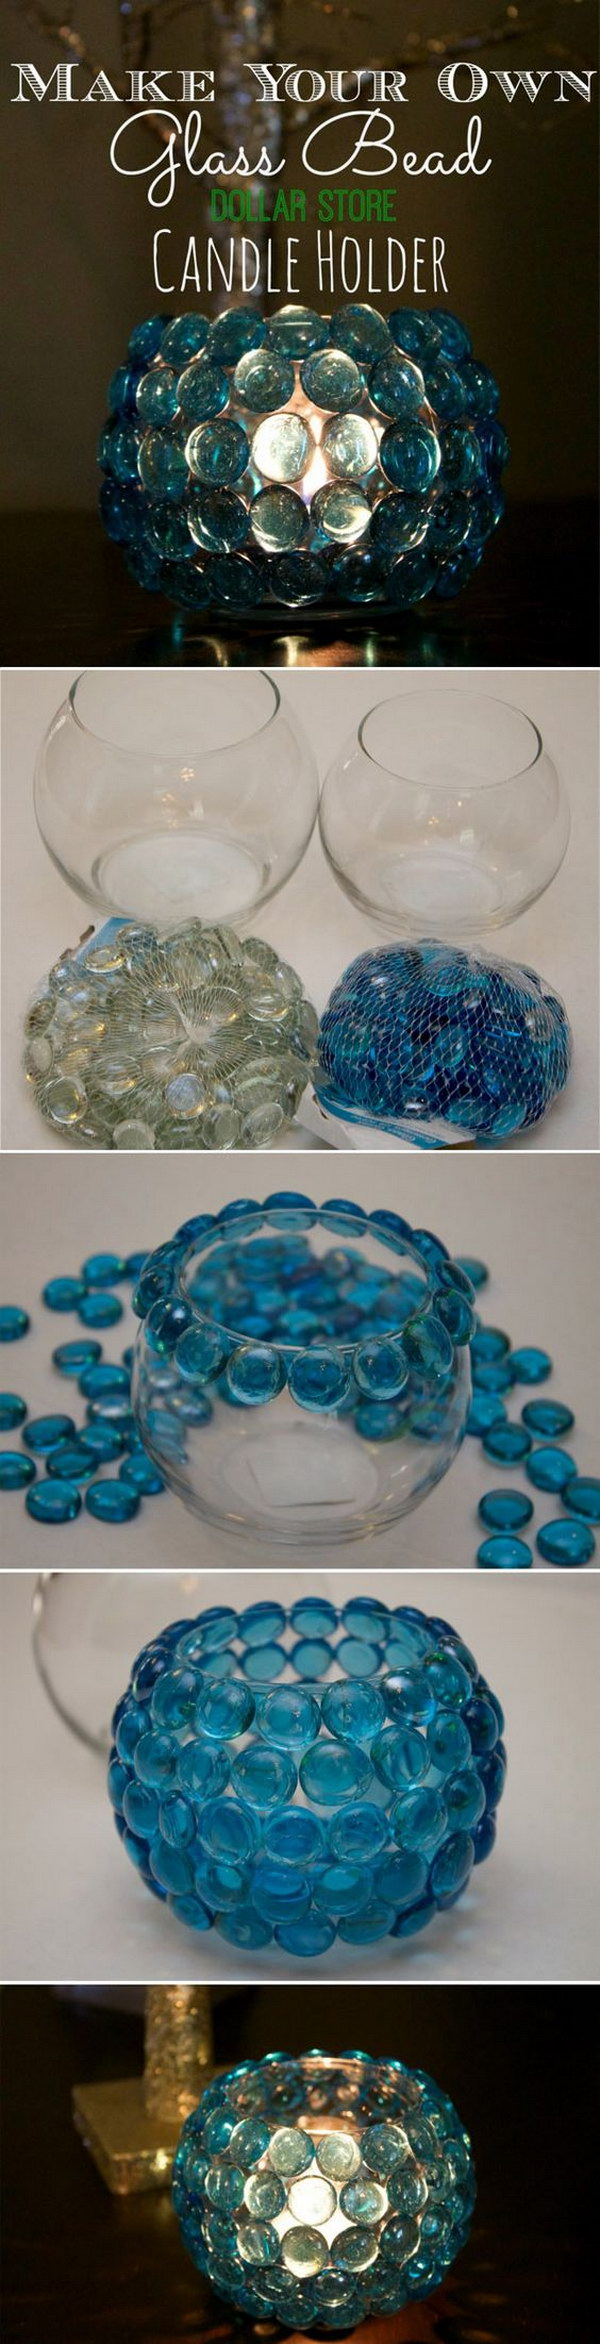 23 DIY Candle Holder Wedding Centerpieces With Glass Bead